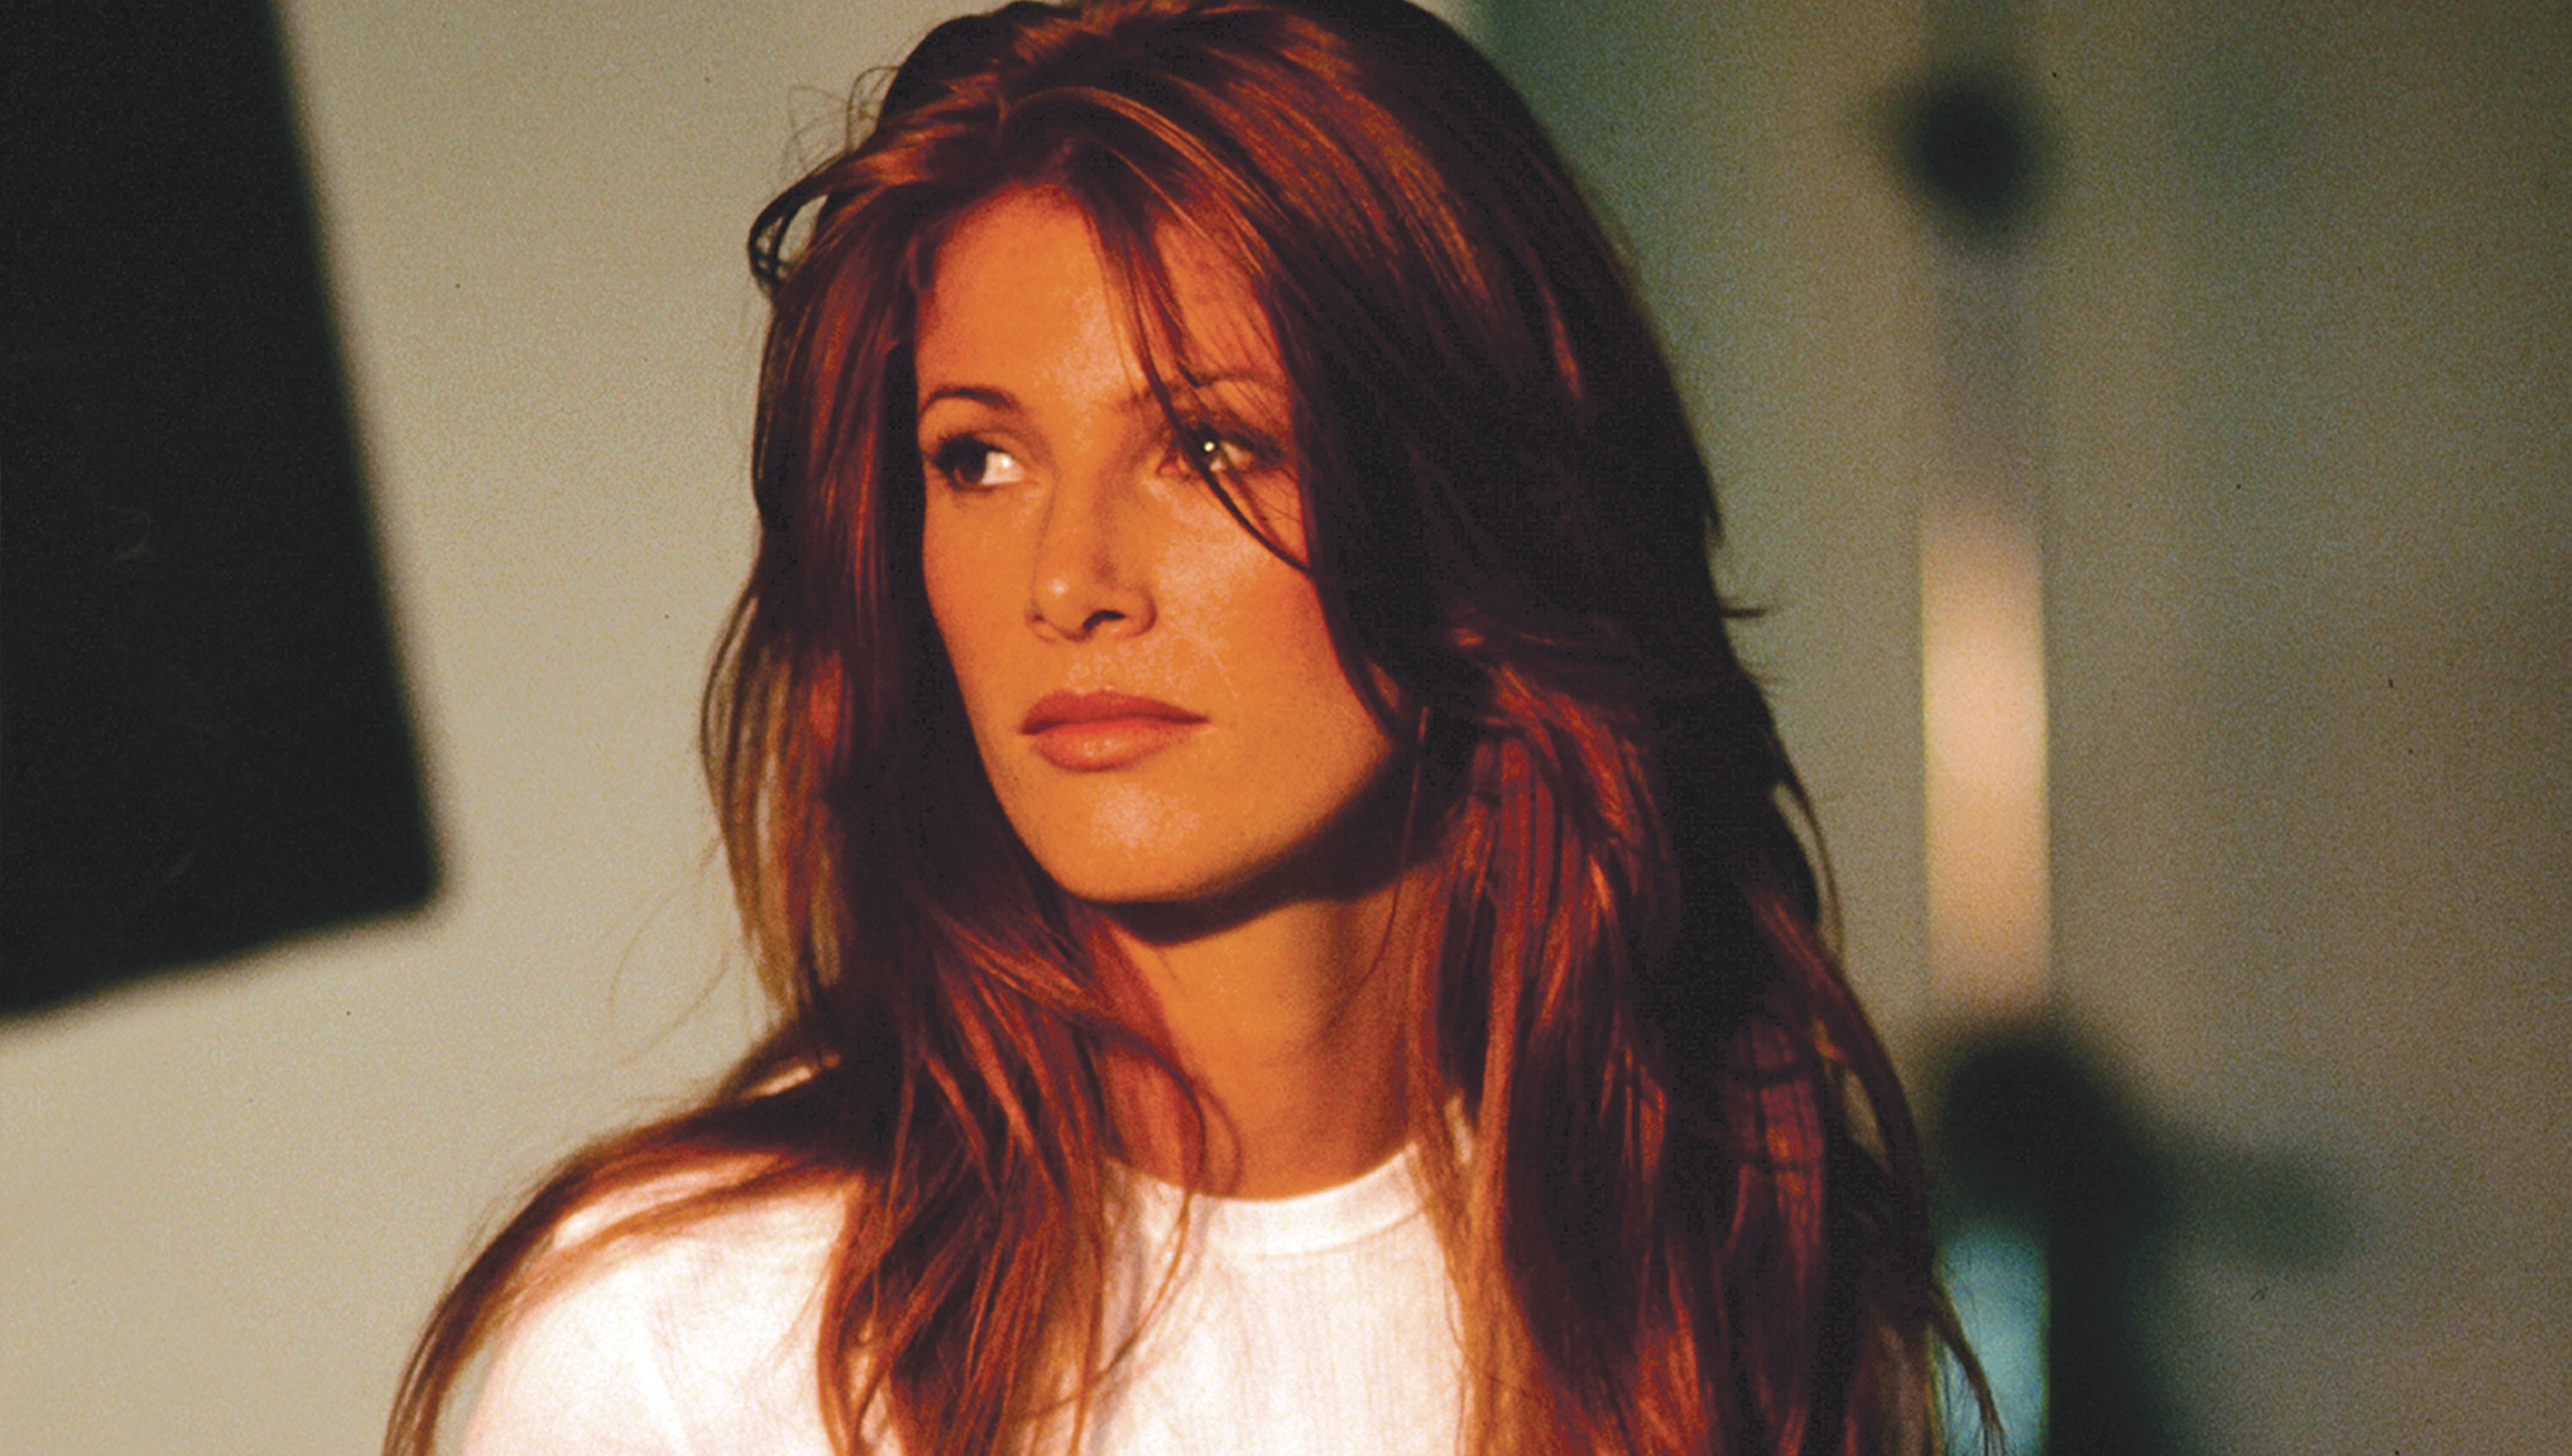 Angie Everhart faces thyroid cancer